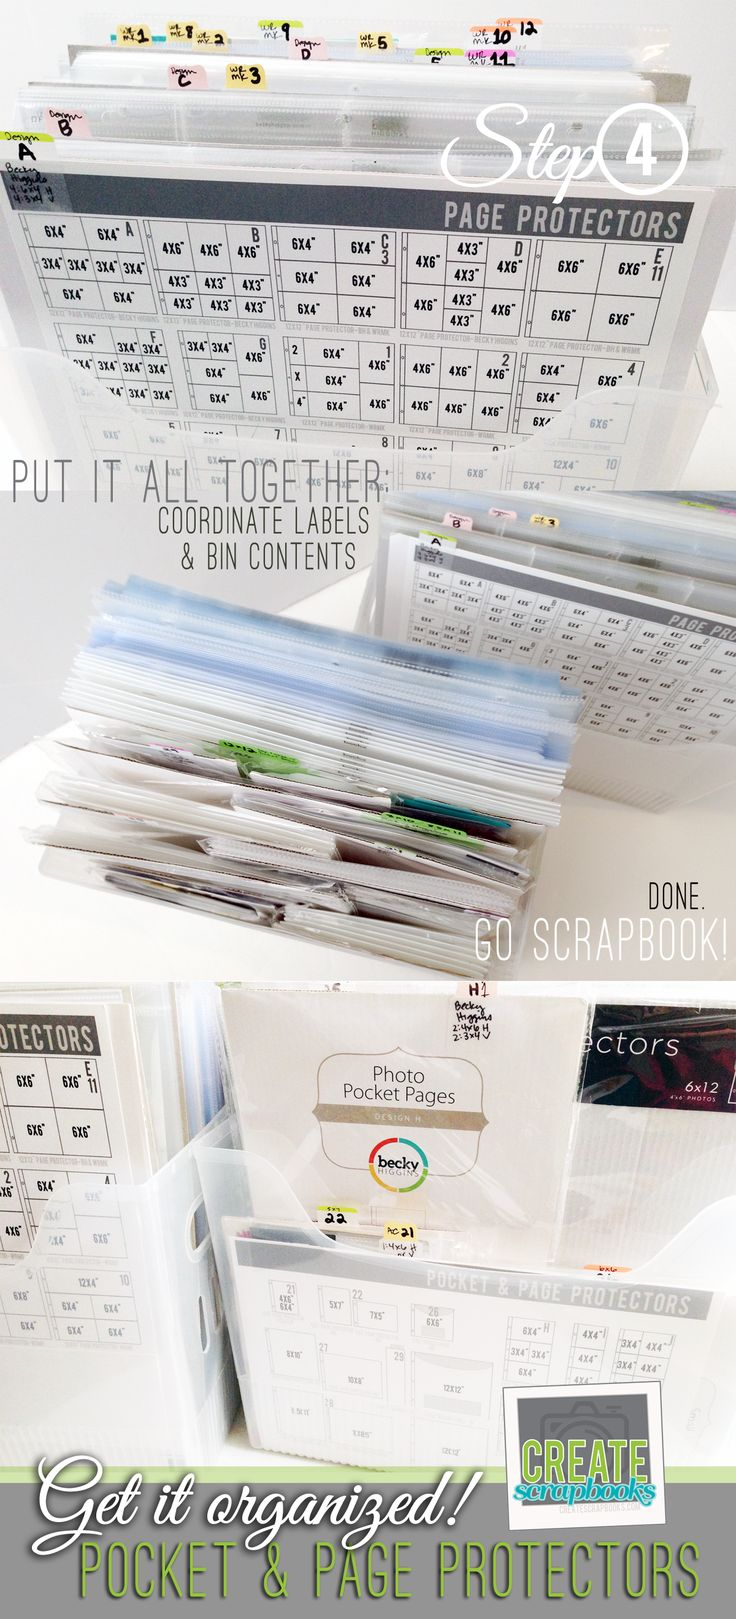 Scrapbook ideas step by step - In 4 Easy Steps Createscrapbooks Com Gives You Step By Step Instructions On